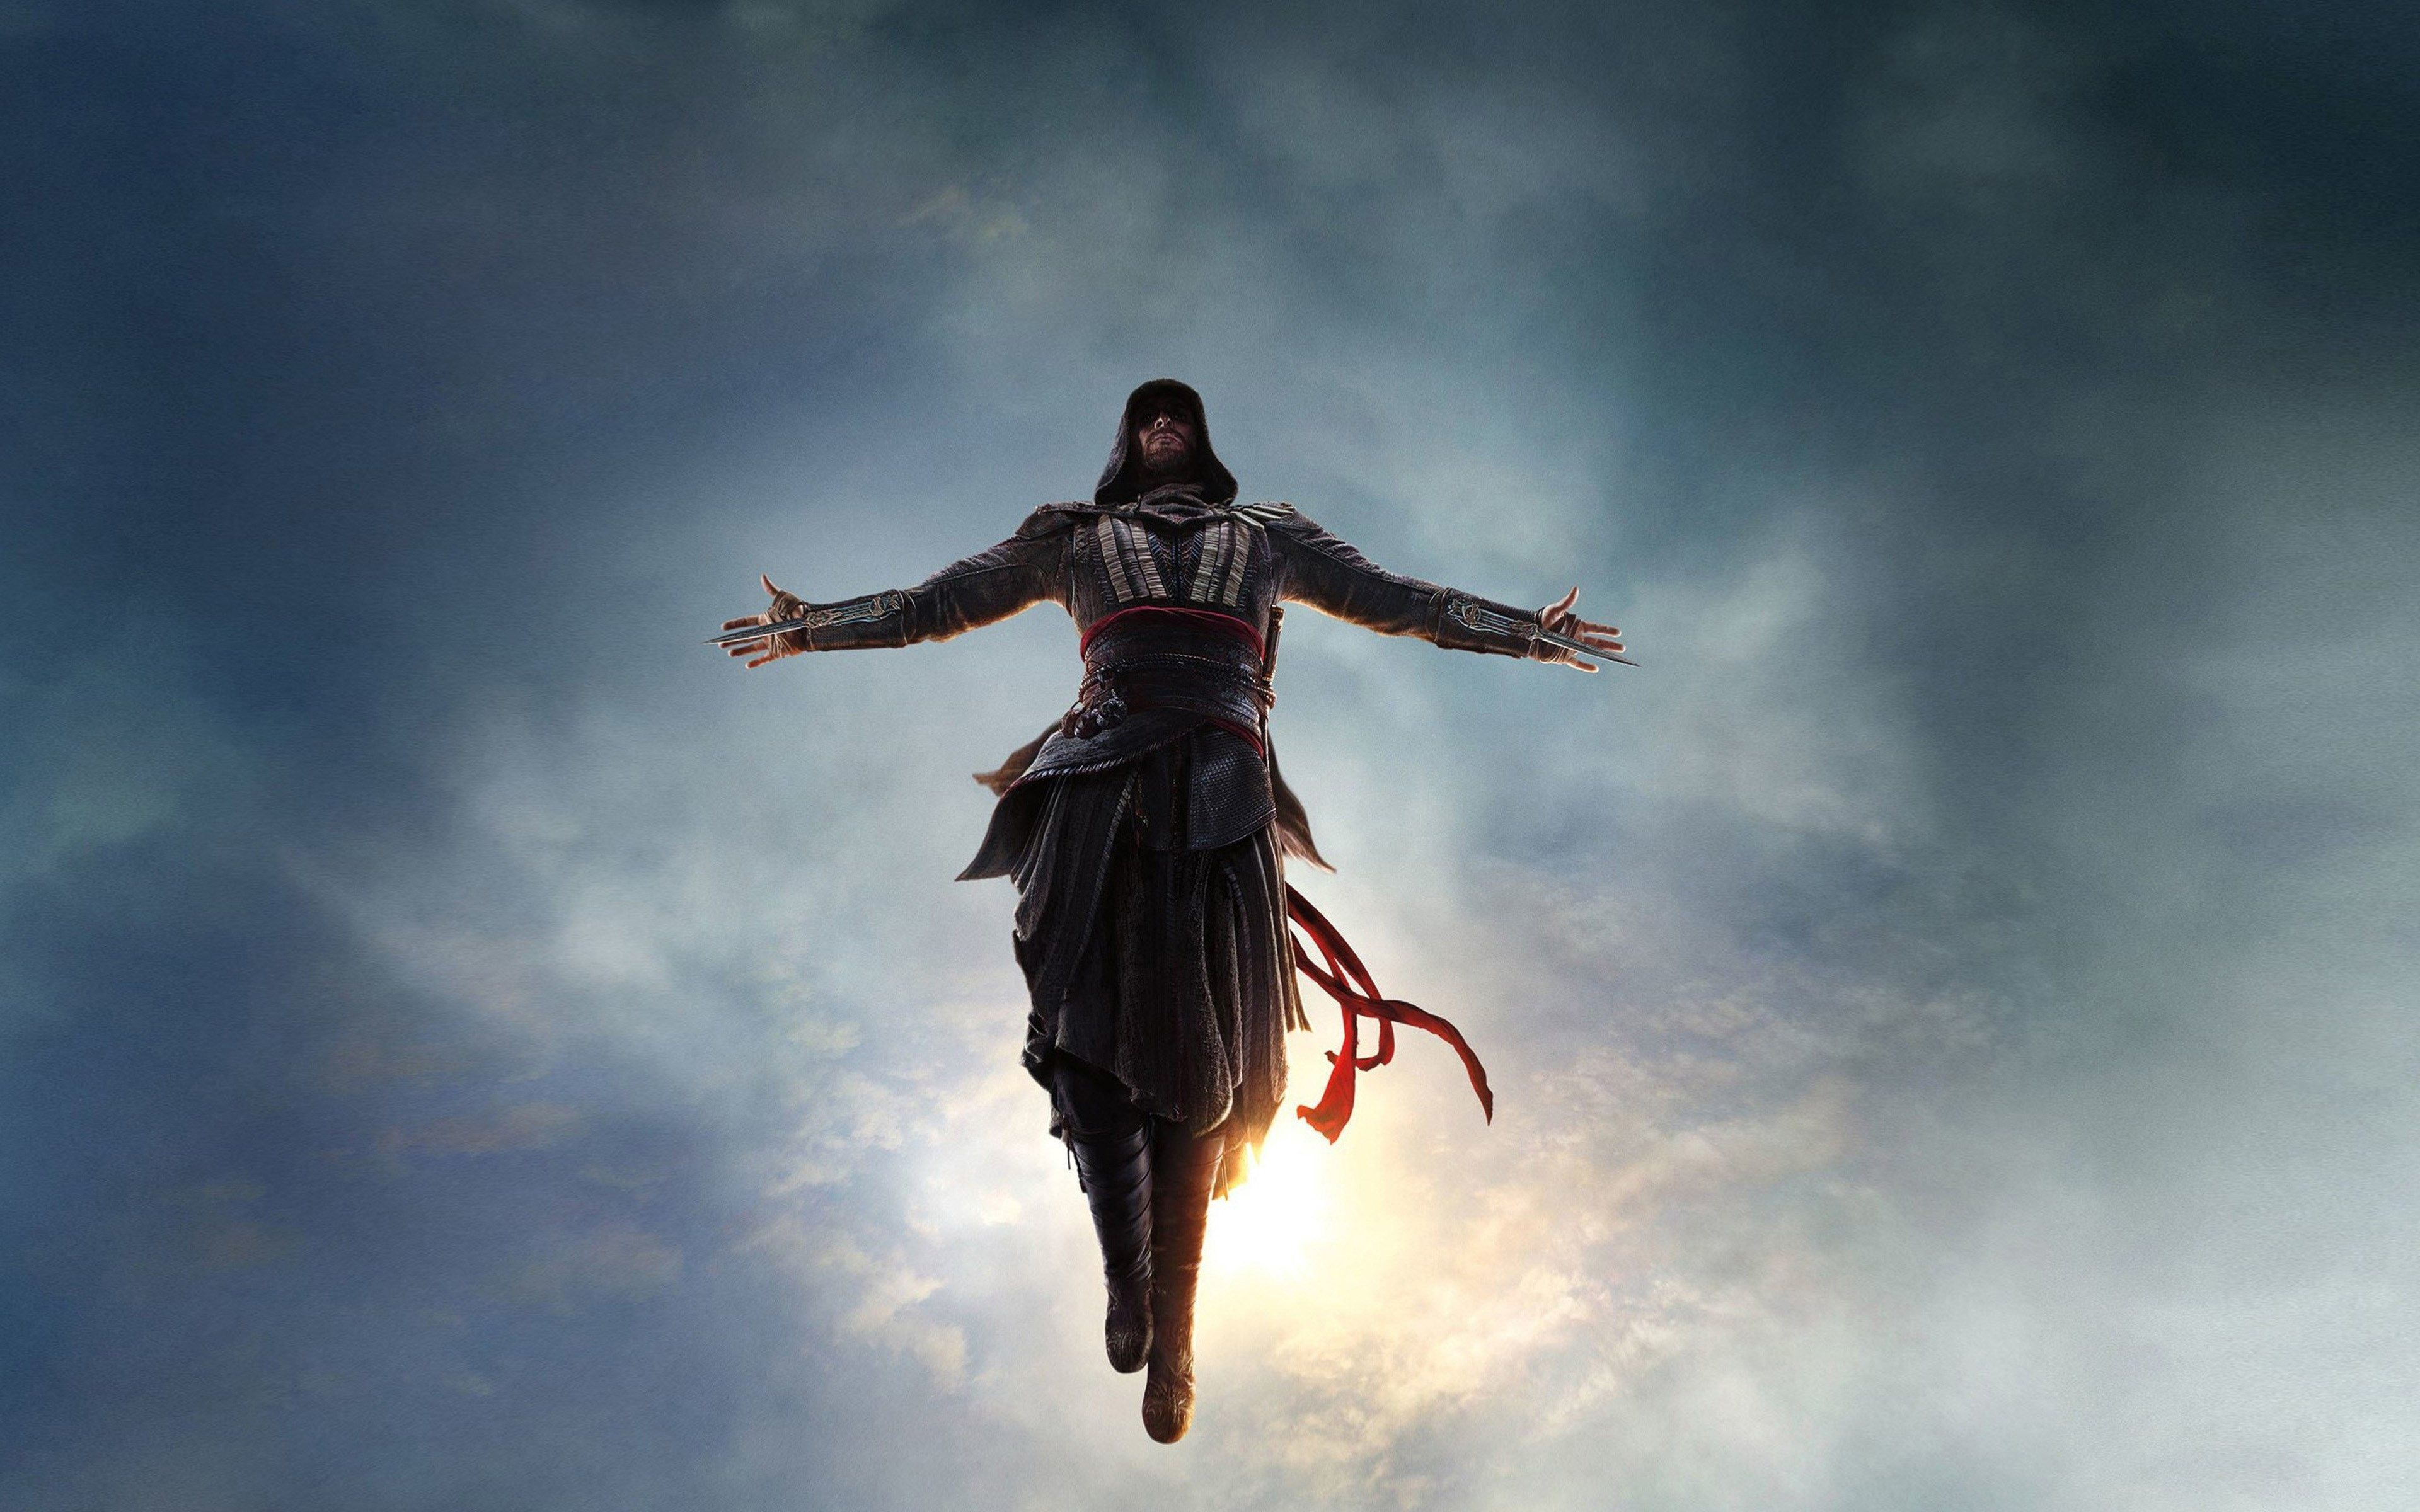 3840x2400 Assassins Creed Movie 4k Wallpaper Background Desktop Computer In 2020 Assassin S Creed Wallpaper Assassins Creed Movie Assassins Creed